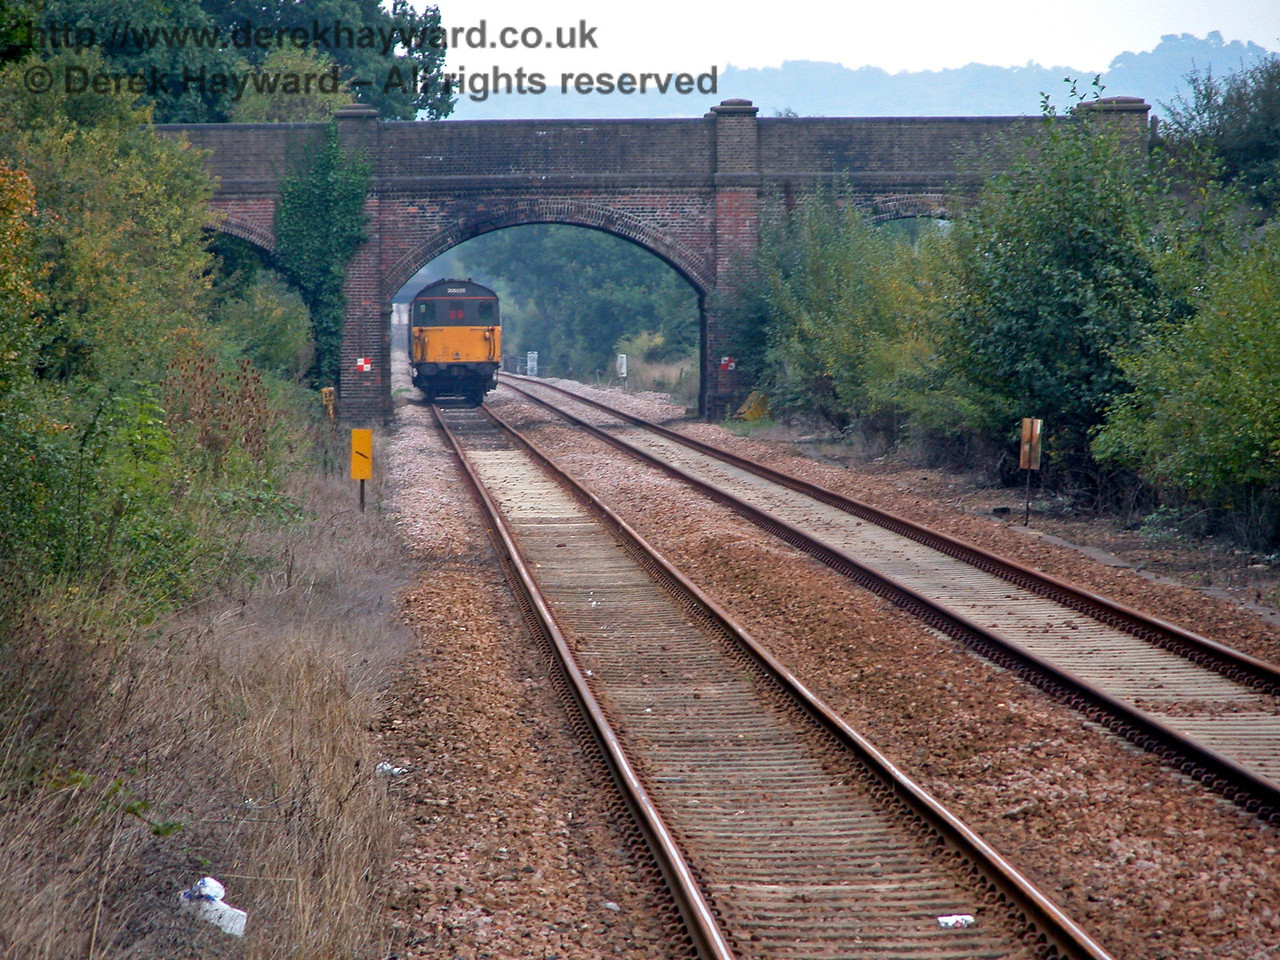 Looking south from Edenbridge Town as Thumper 205025 passes under the first overbridge south of the station. On the right the trees and bushes conceal the site of the old goods yard. 18.09.2003